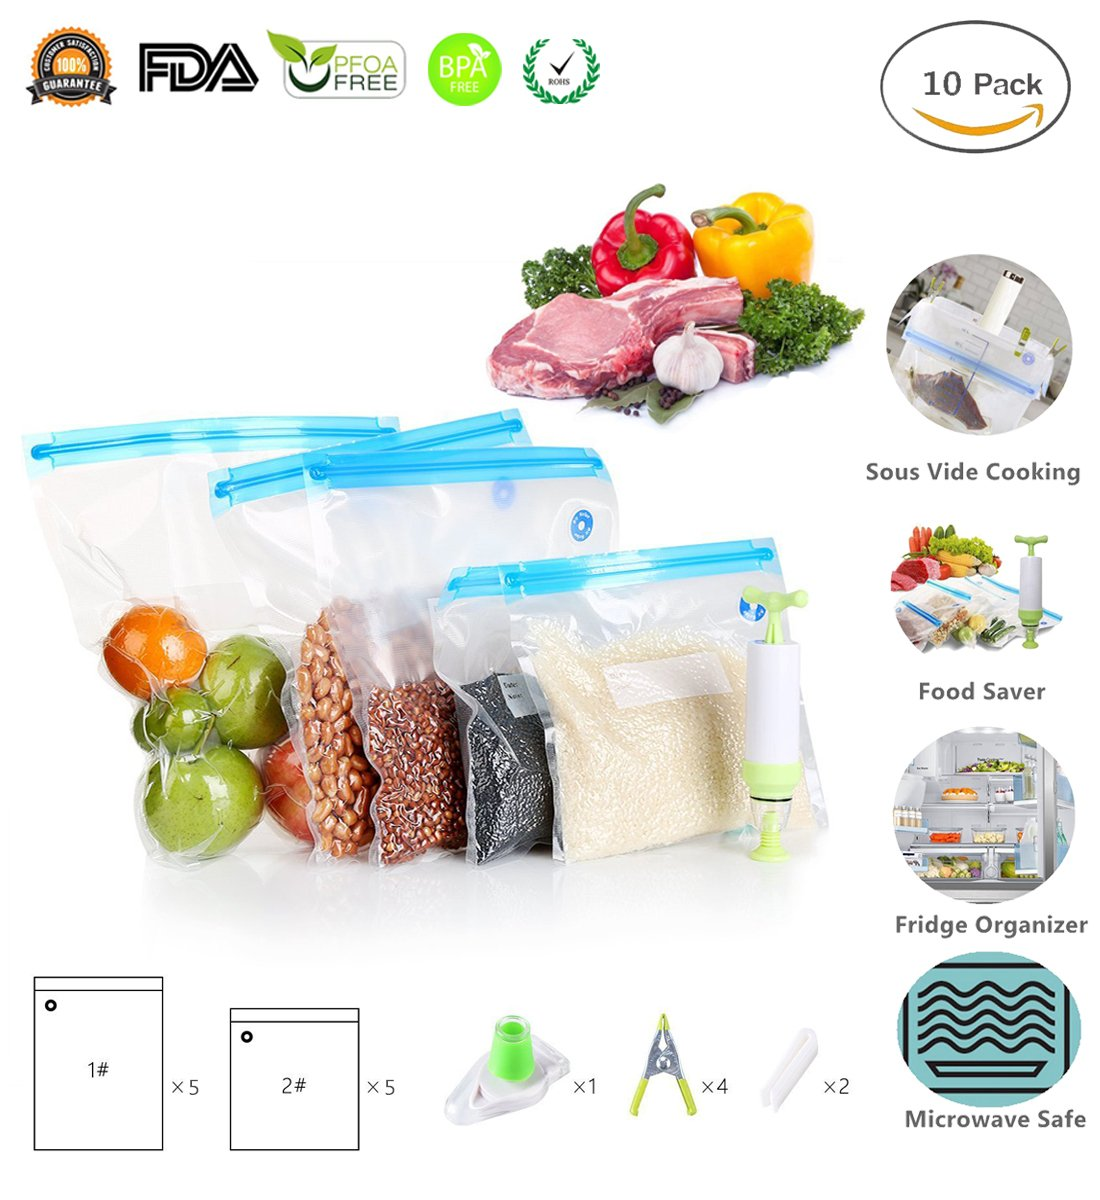 Sous Vide Bags Essentials Kit for Joule Sous Vide and Anova Precision Cooker, Reusable Food Storage Freezer and Water Cooking Bags, 10 Vacuum Bags, 1 Hand Pump, 2 Sealing Clips and 4 Sous-Vide Clips